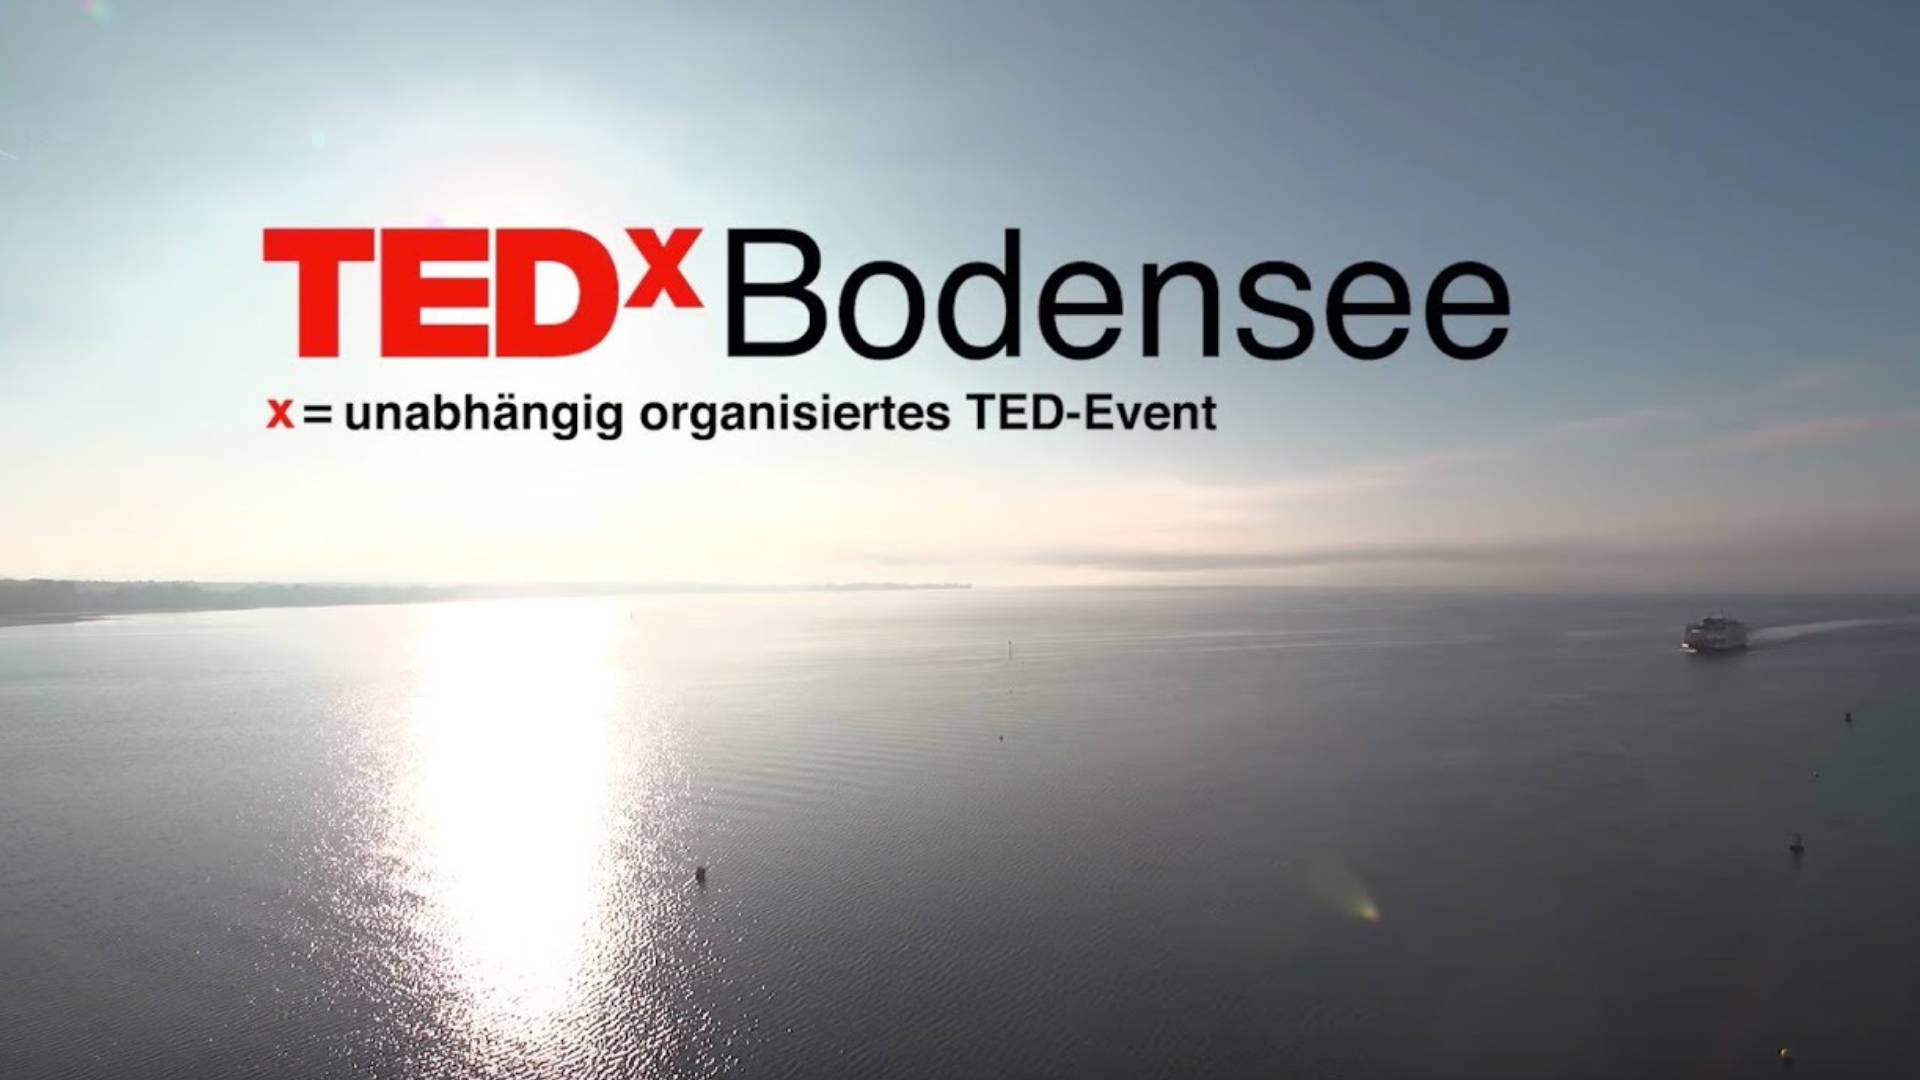 TEDxBodensee